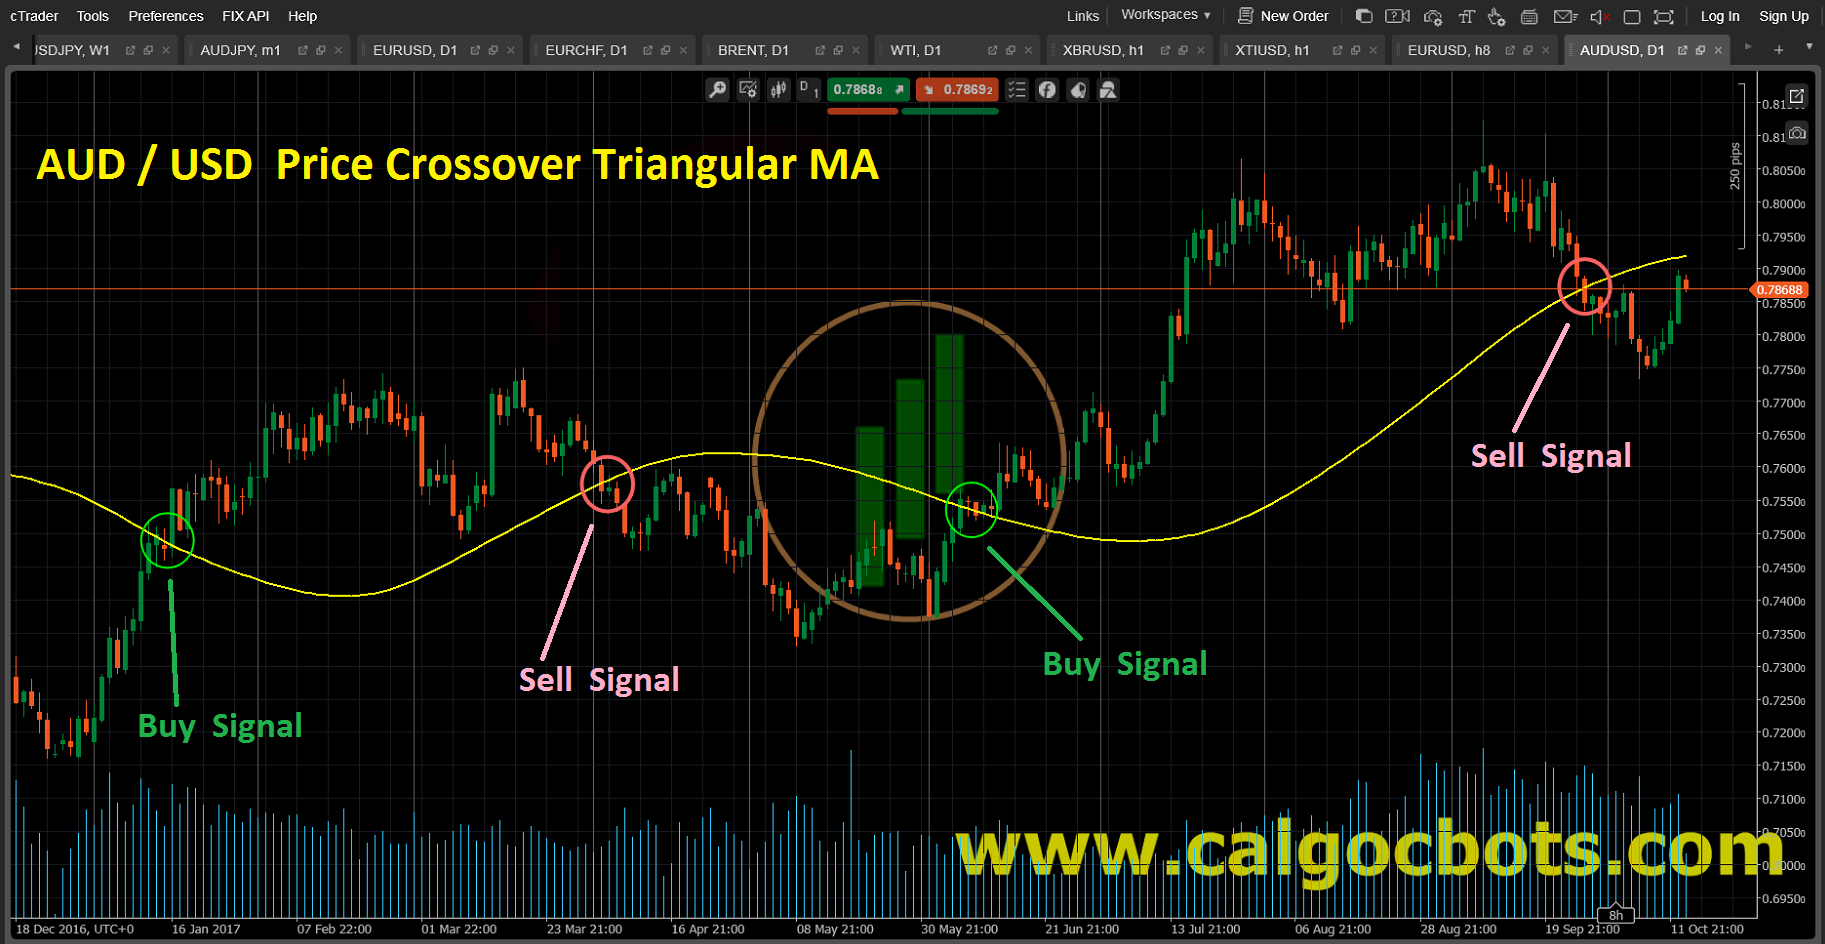 Price Crossover Triangular MA Candlestick_Chart_AUD_USD_cAlgo_cBots_cTrader_01